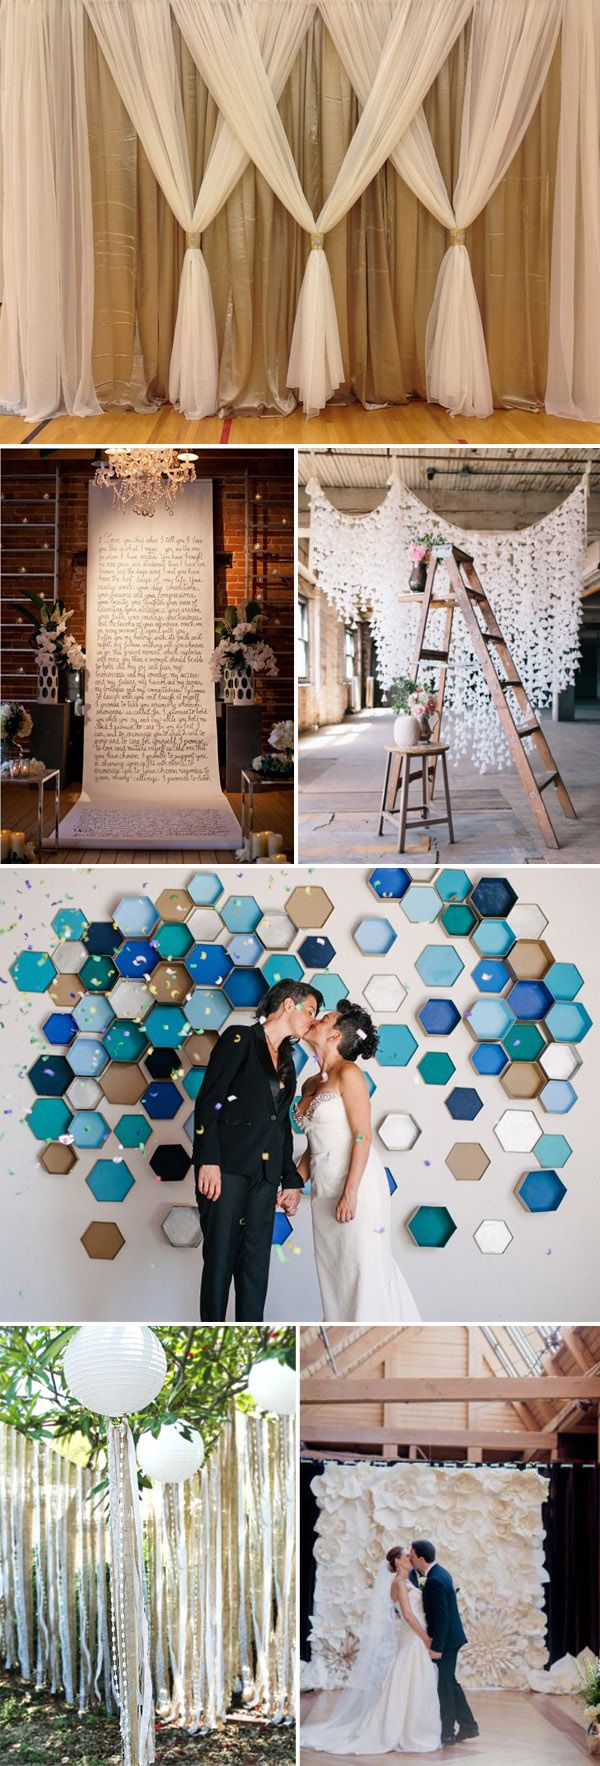 diy wedding backdrop ideas for 2015 wedding ceremony decorations. I love this list!